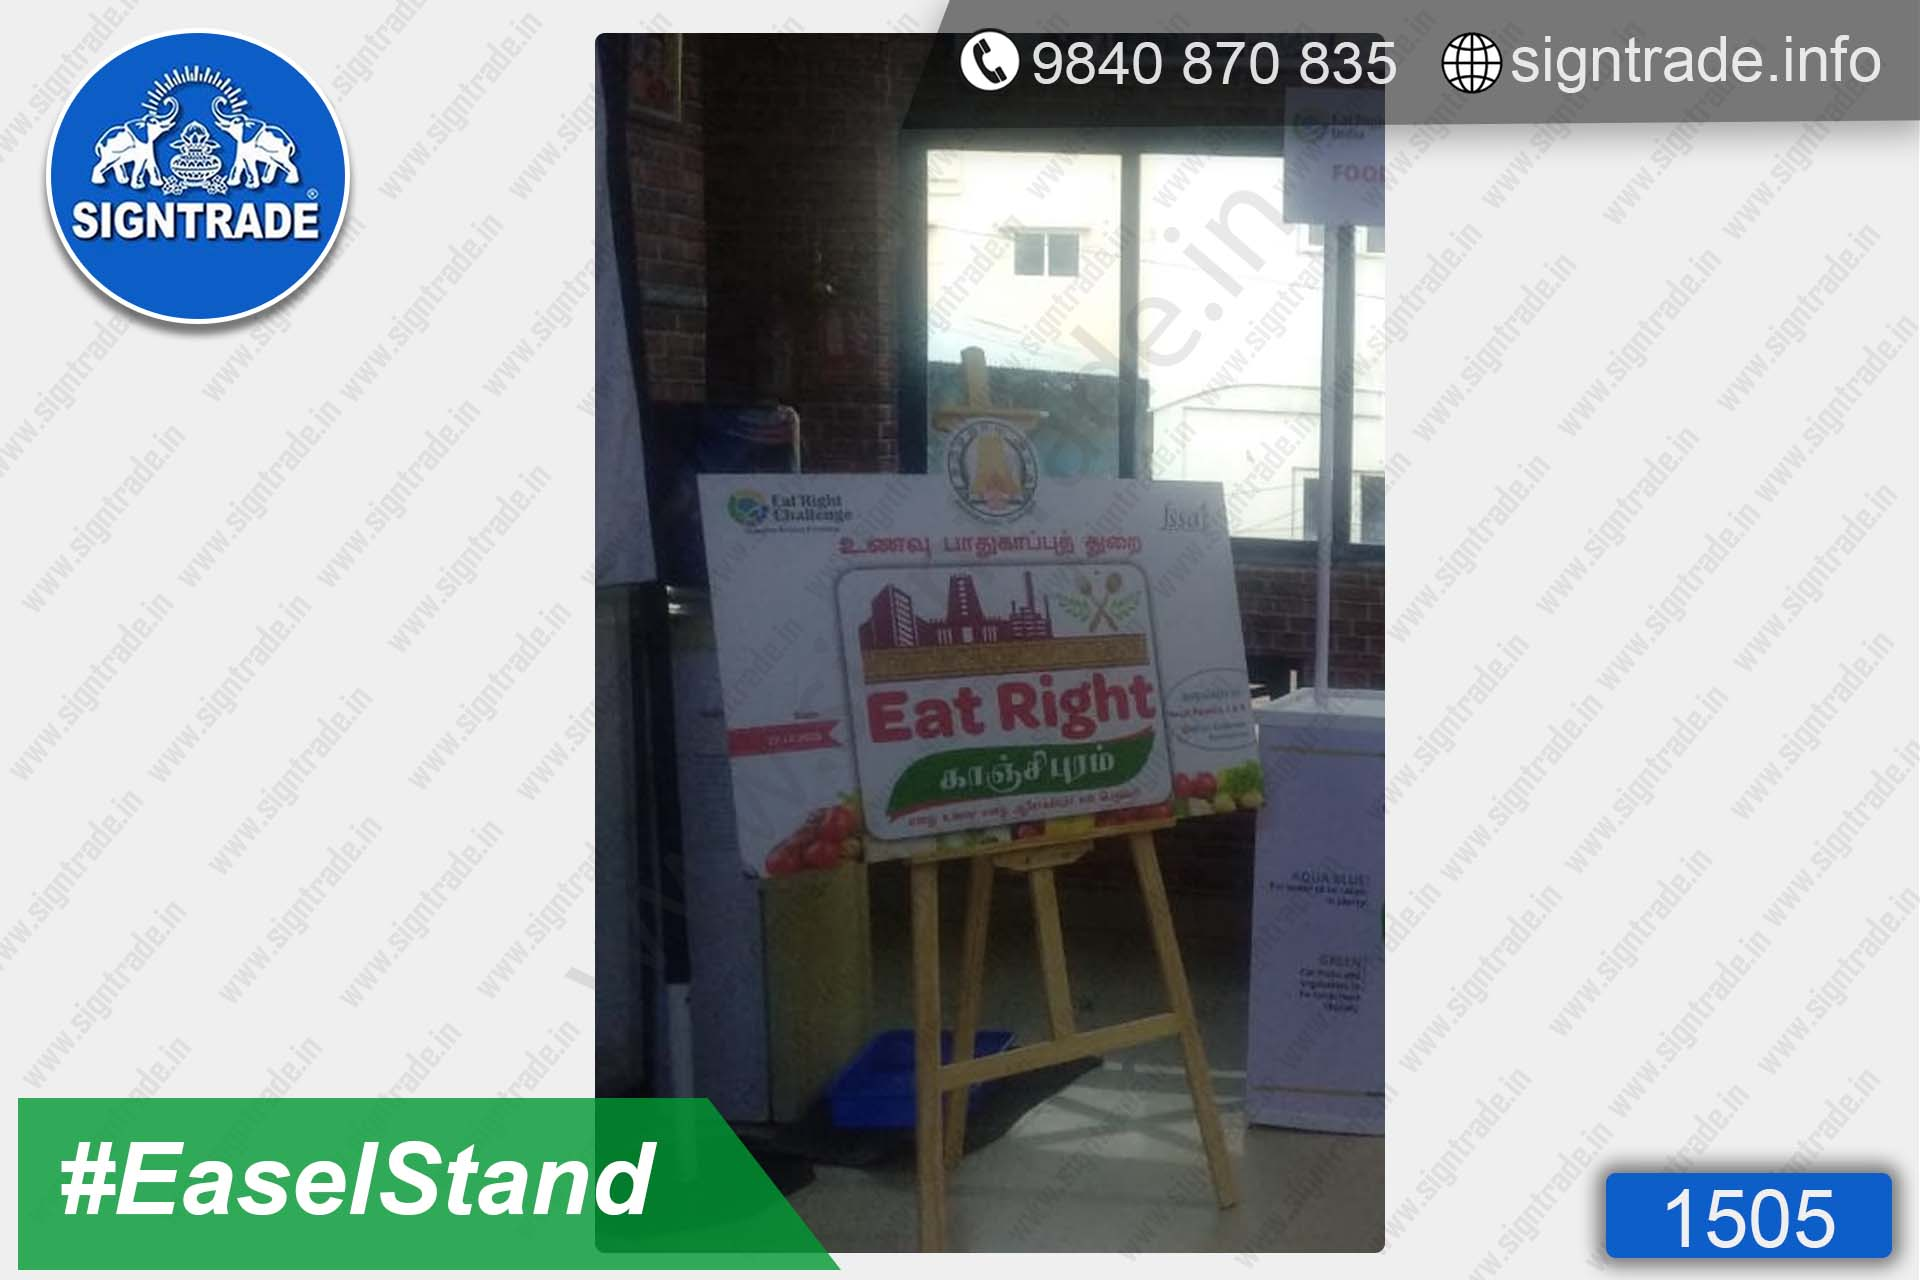 Food Safety Department, Kancheepuram District, Chennai - Easel Stand, Chennai - SIGNTRADE - Promotional Easel Stand Manufacturers in Chennai